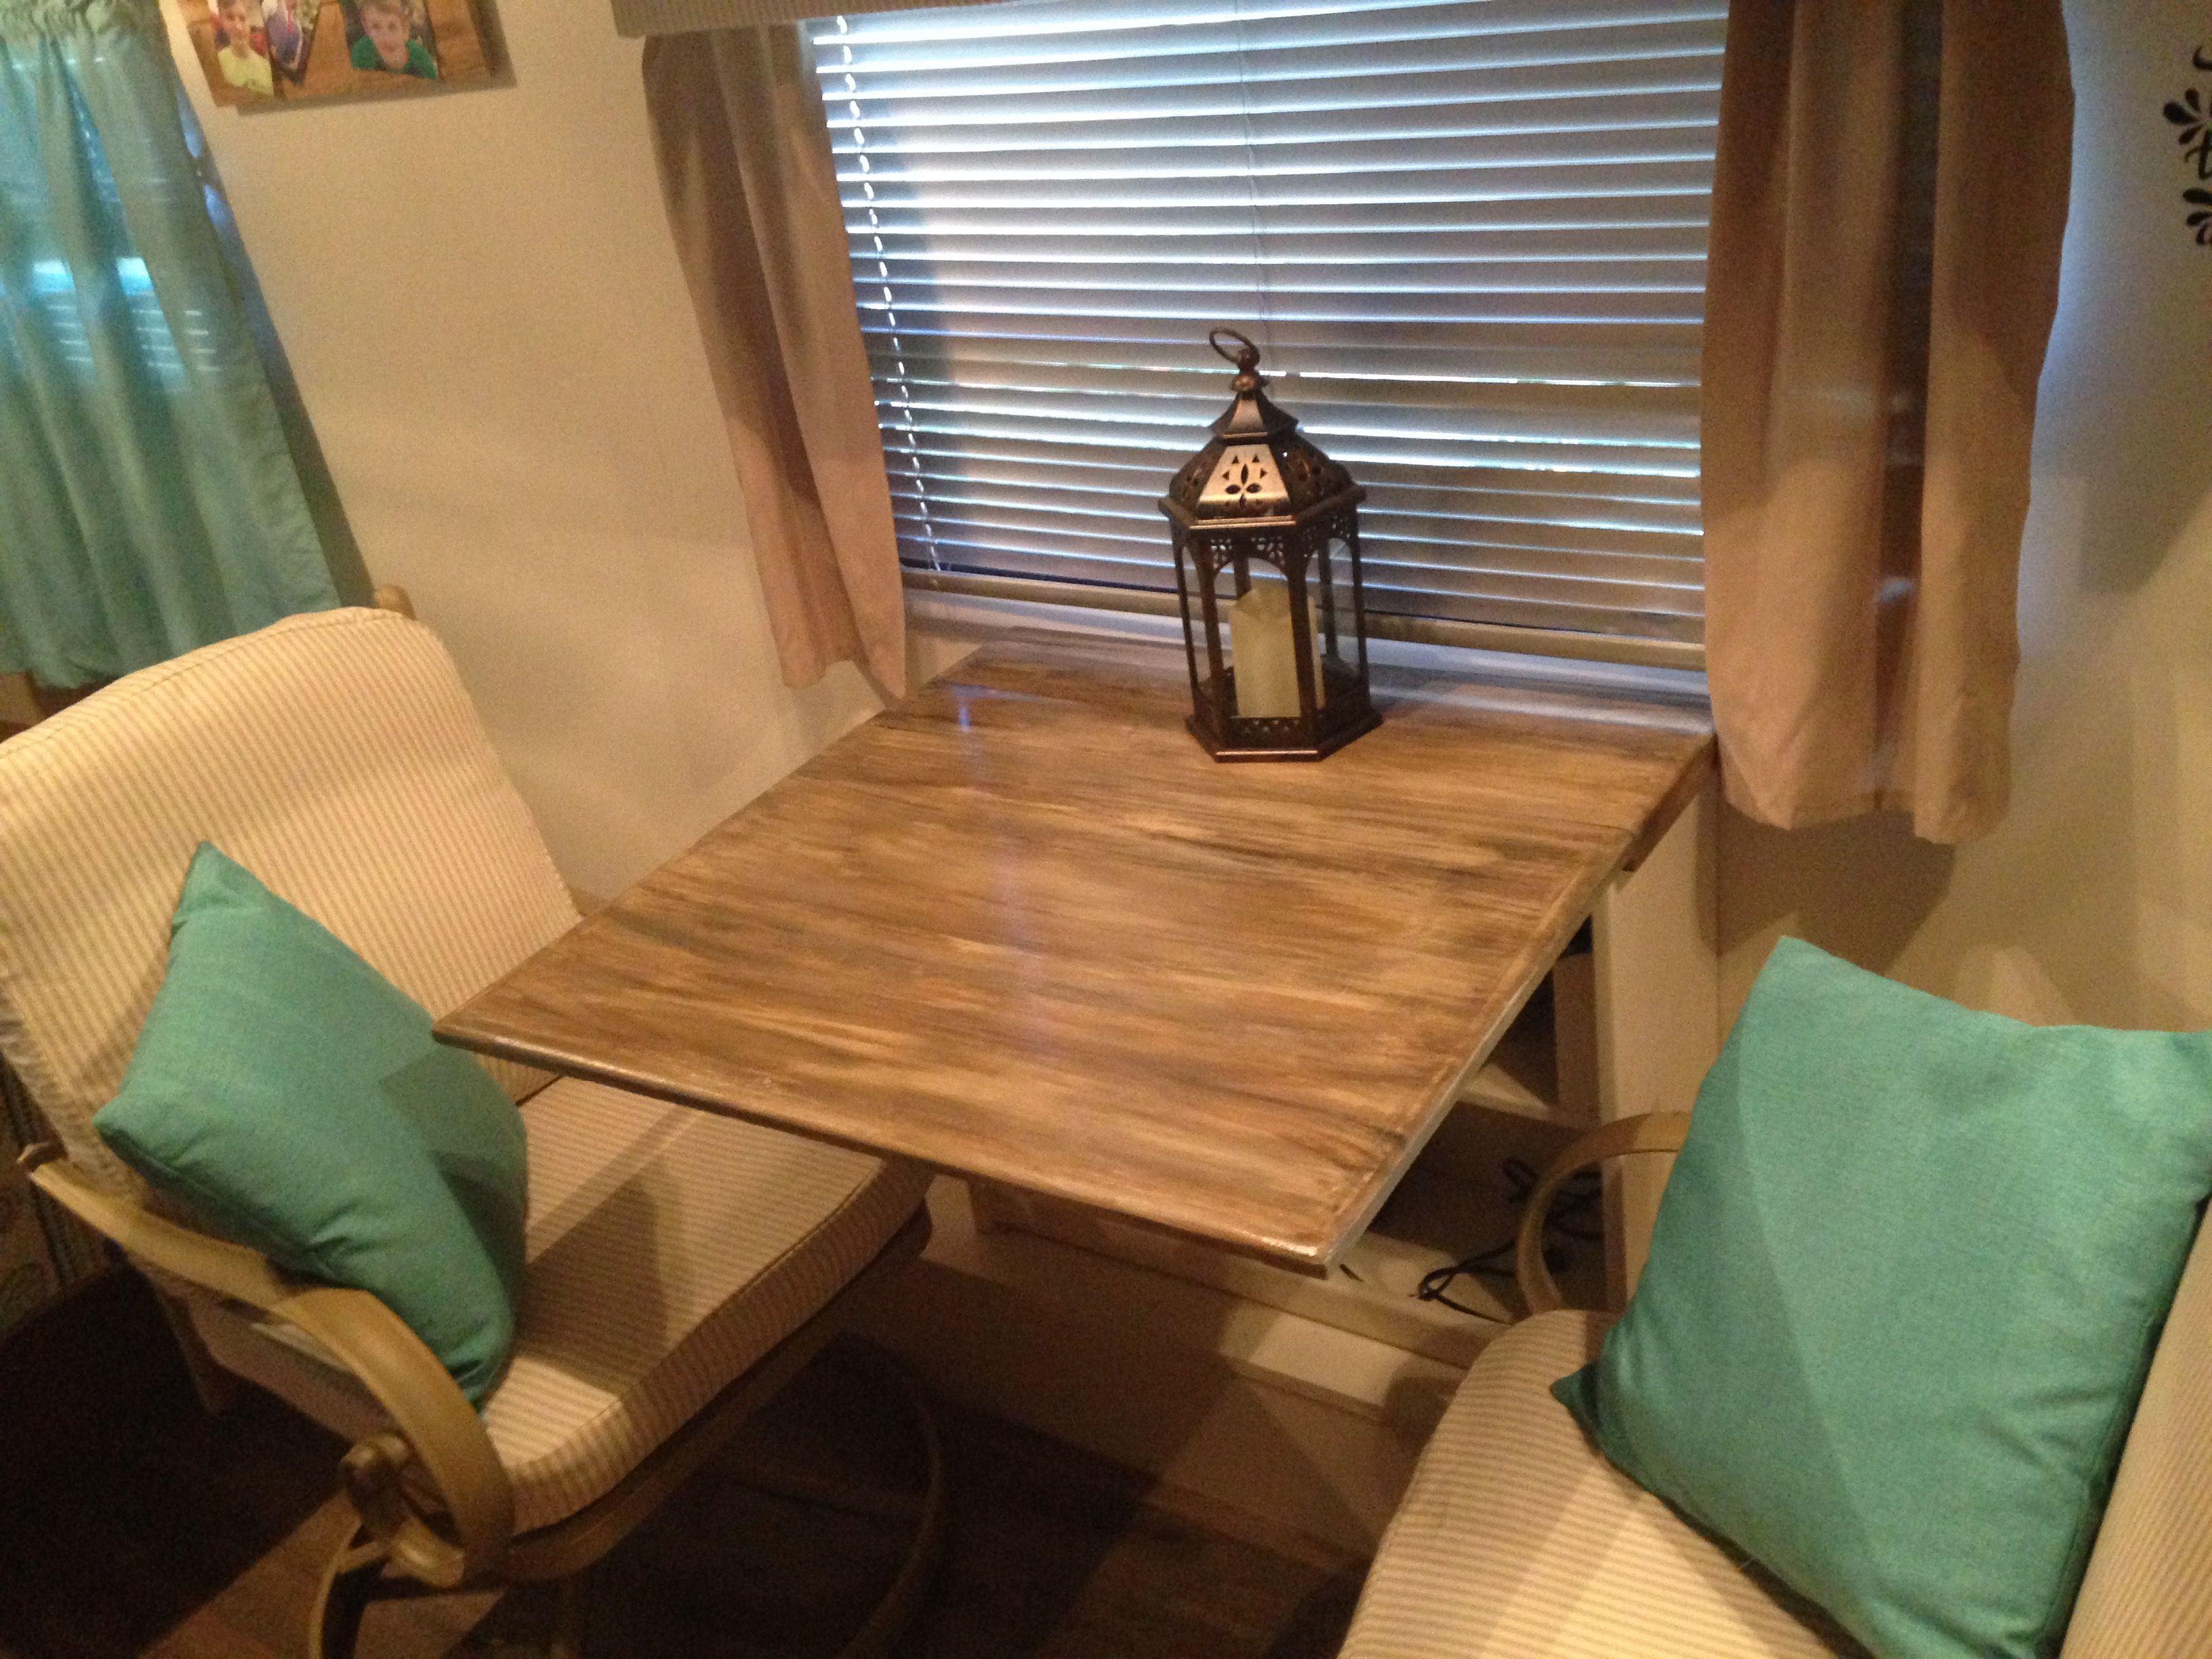 Fine Took Out The Dinette And Bench Seats In The Camper Replaced Andrewgaddart Wooden Chair Designs For Living Room Andrewgaddartcom